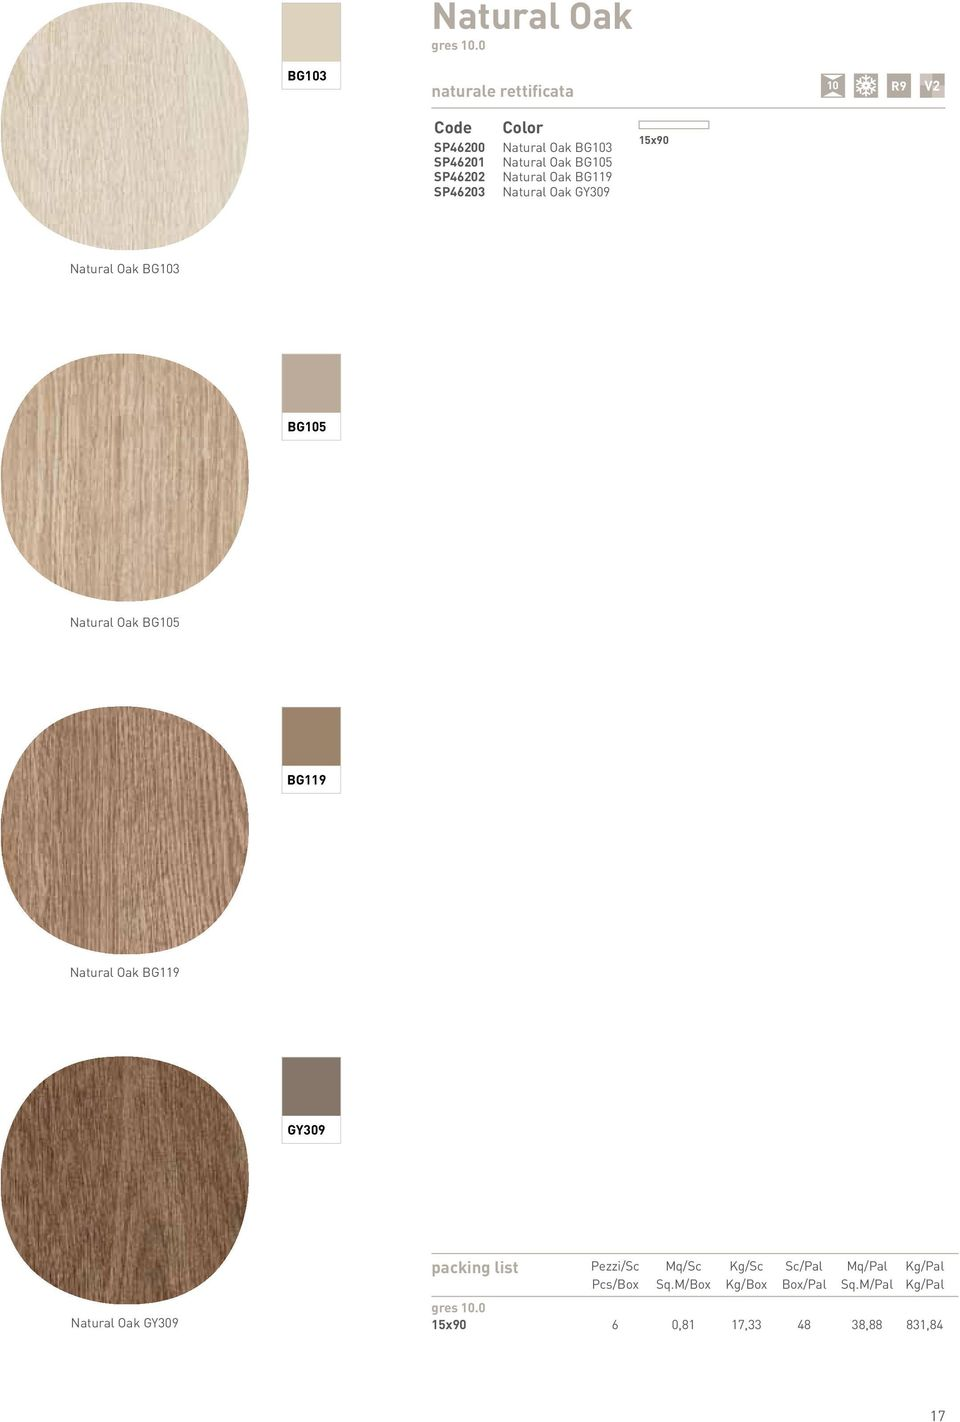 Natural Oak BG105 Natural Oak BG119 Natural Oak GY309 15x90 Natural Oak BG103 BG105 Natural Oak BG105